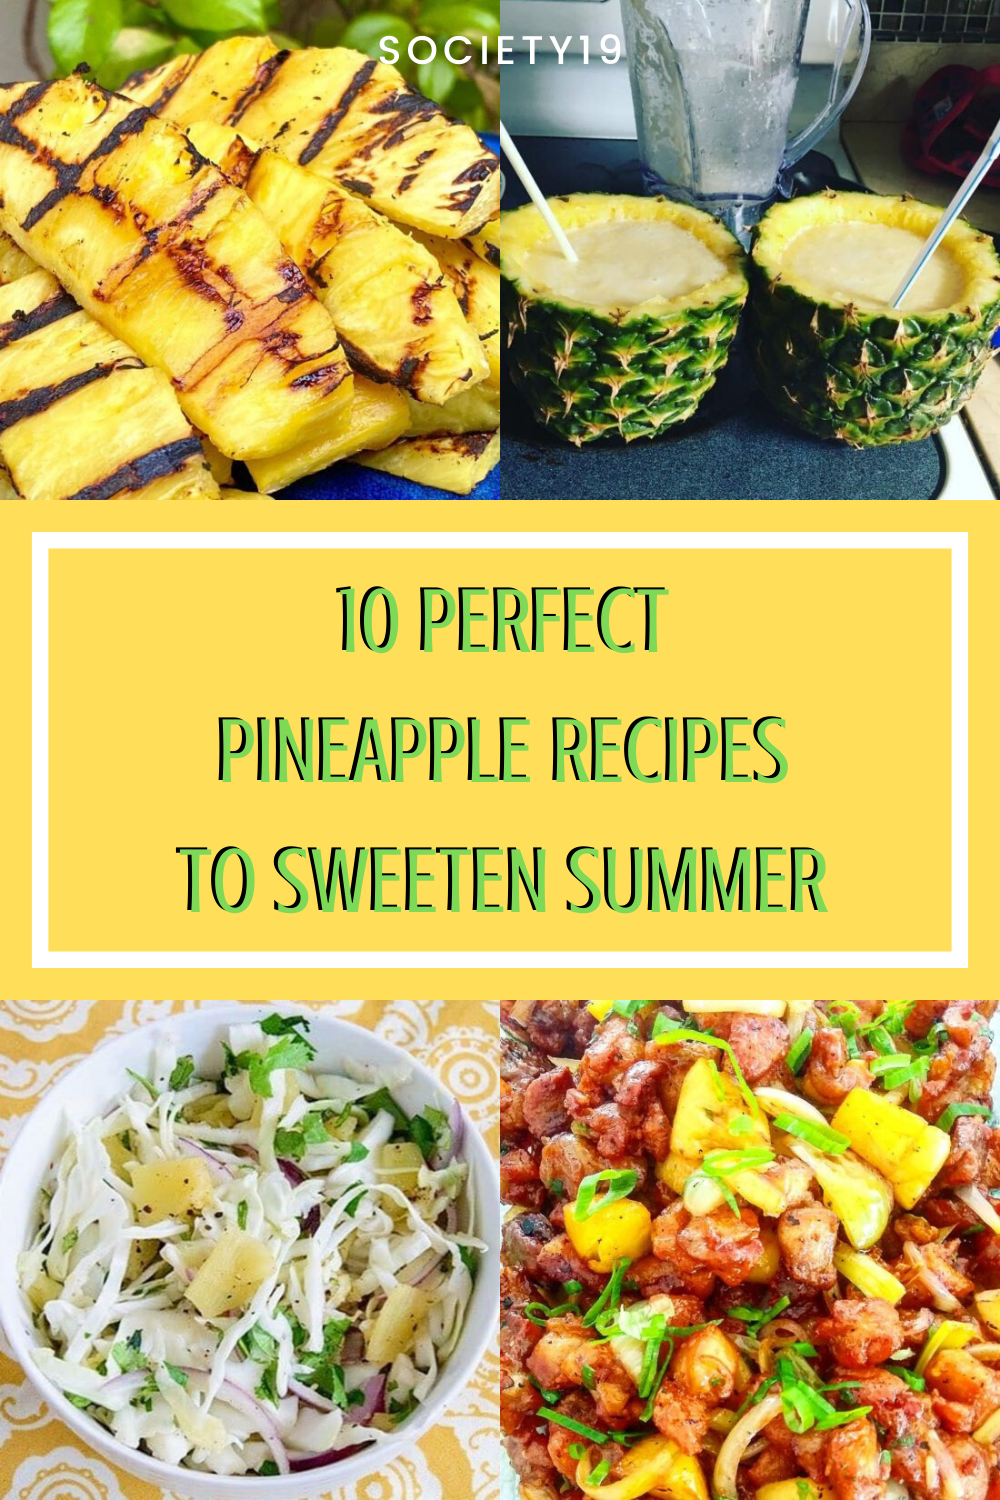 10 Perfect Pineapple Recipes To Sweeten Summer